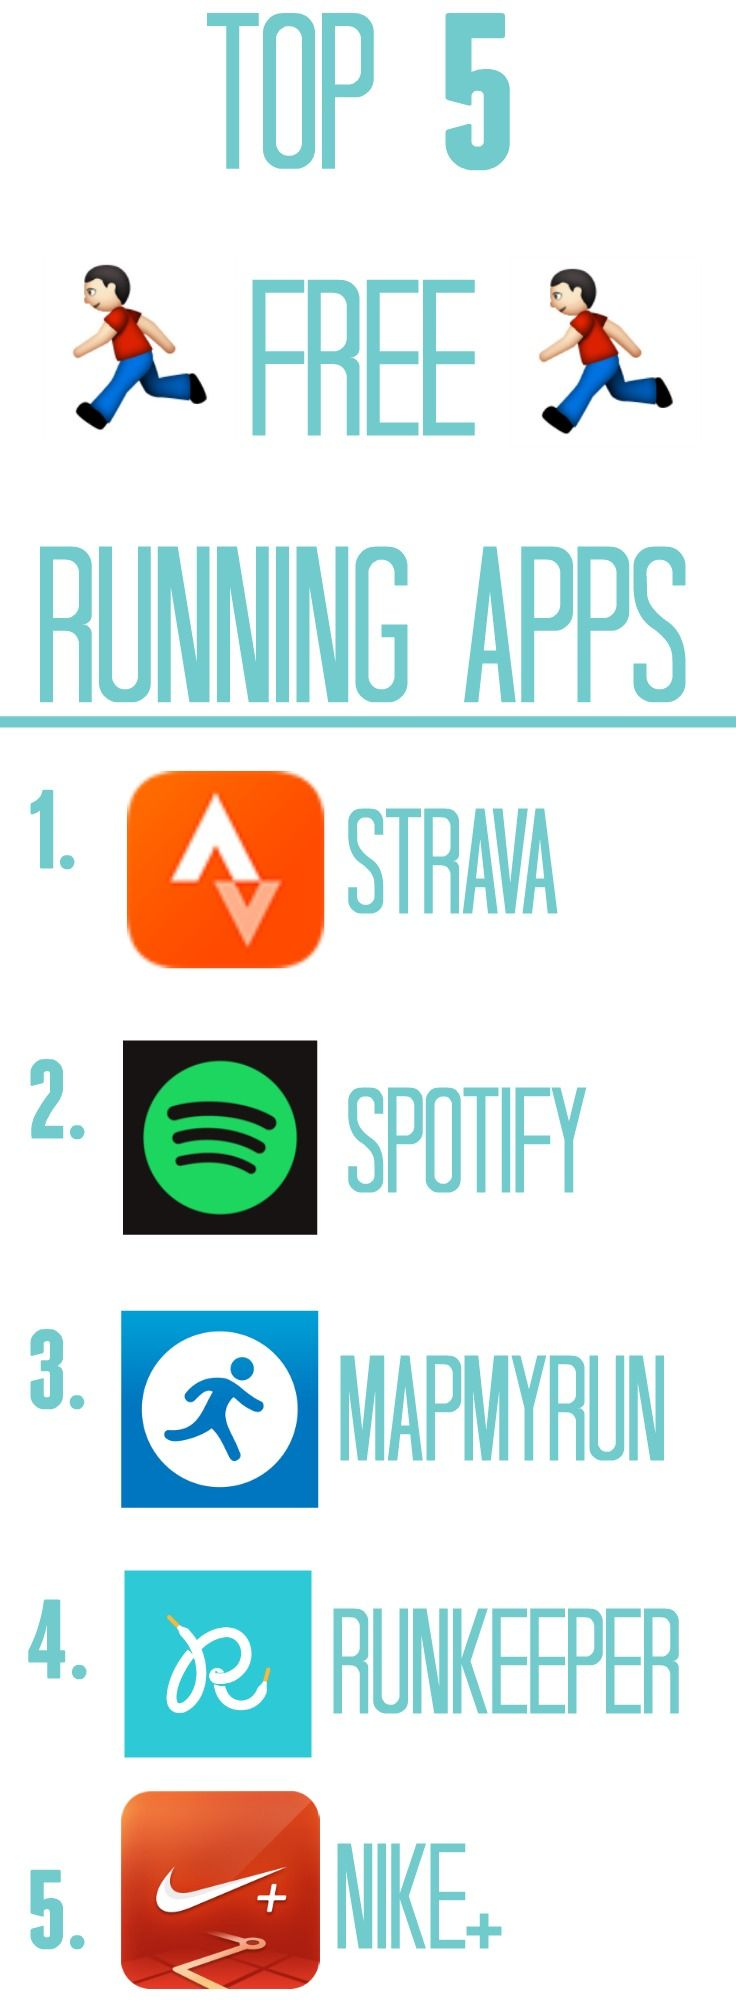 Top 5 Free Running Apps